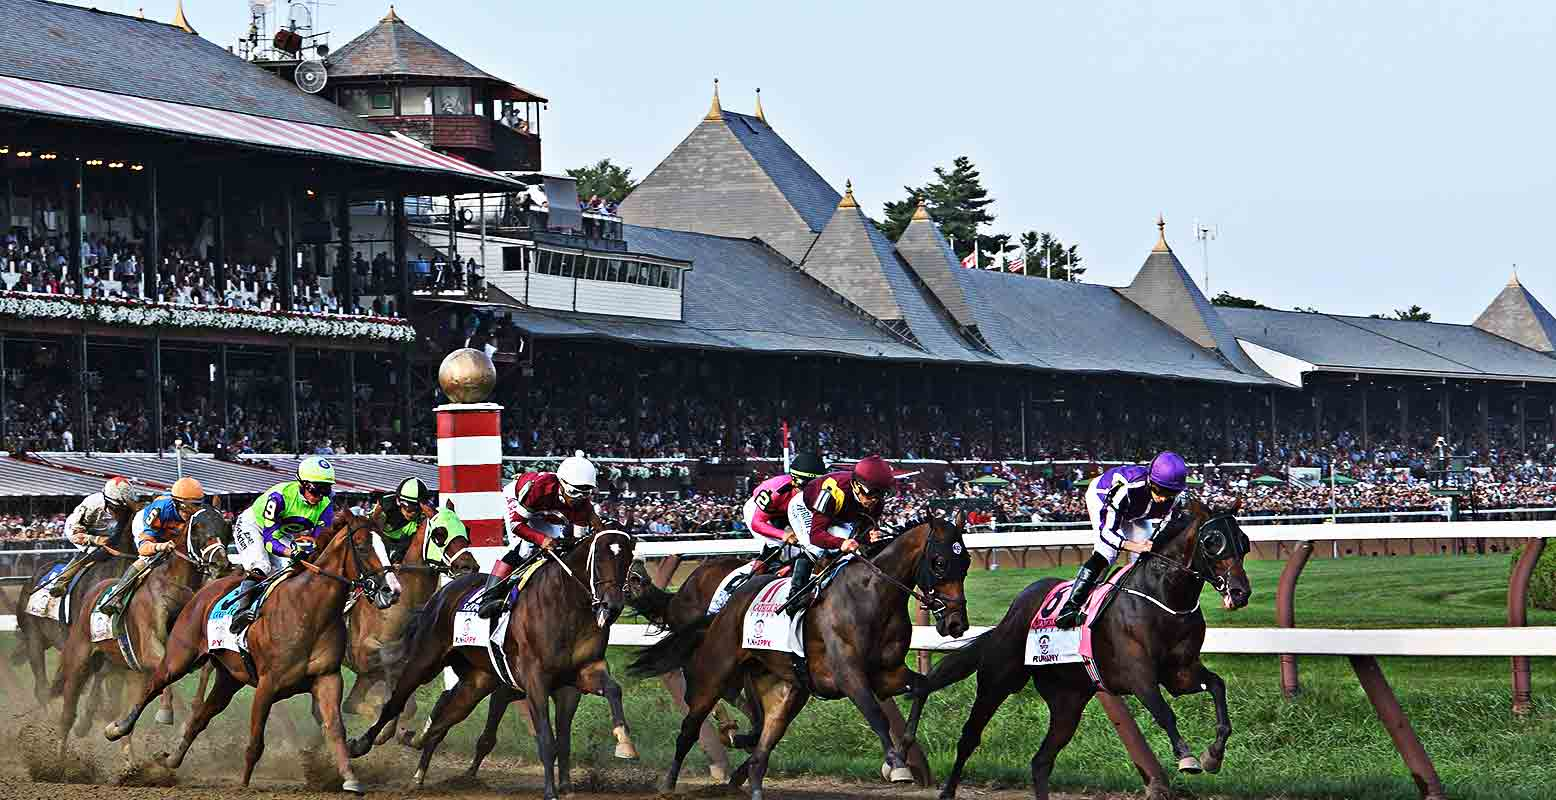 How to bet on the horses saratoga springs ny northern illinois vs florida state betting line